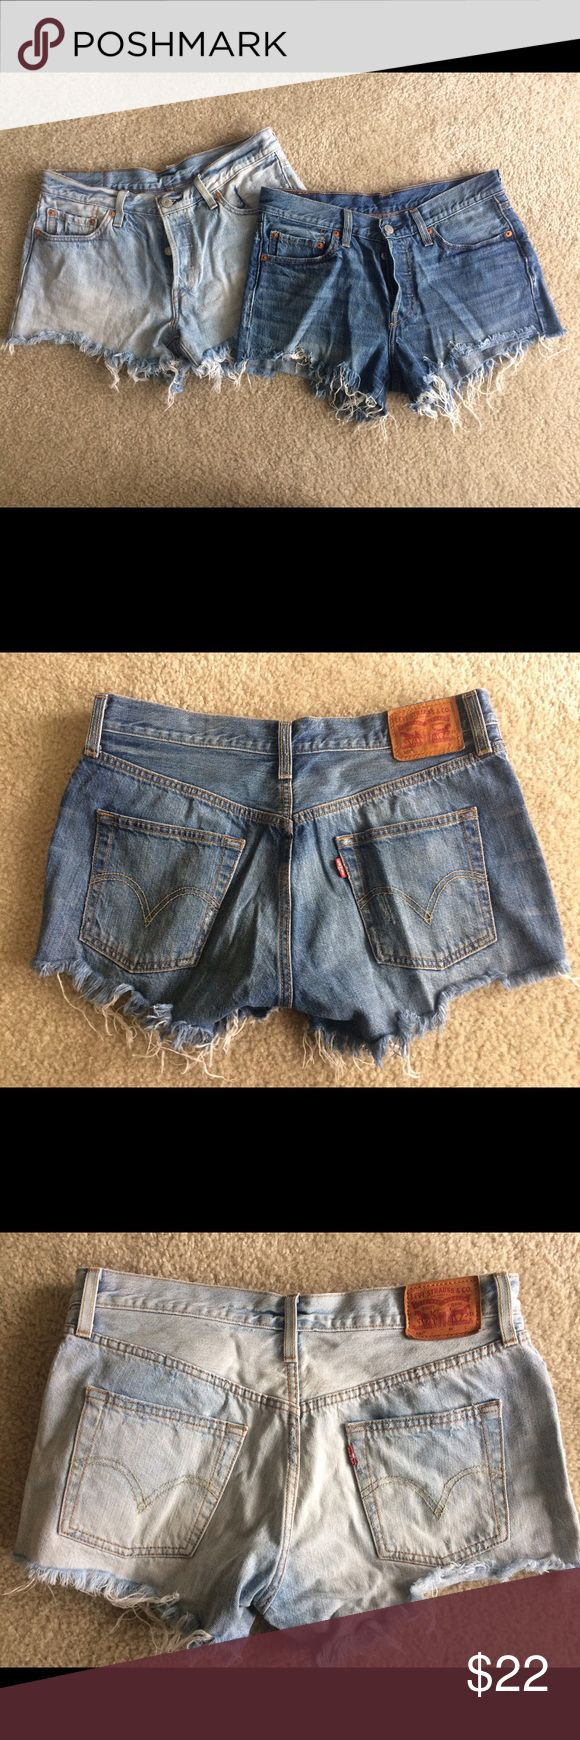 Levi's 501 cutoff jean shorts size 28, LOT of 2 Two pairs of gently used Levi shorts, high waist and button fly closure. Great for summer! Levi's Shorts Jean Shorts